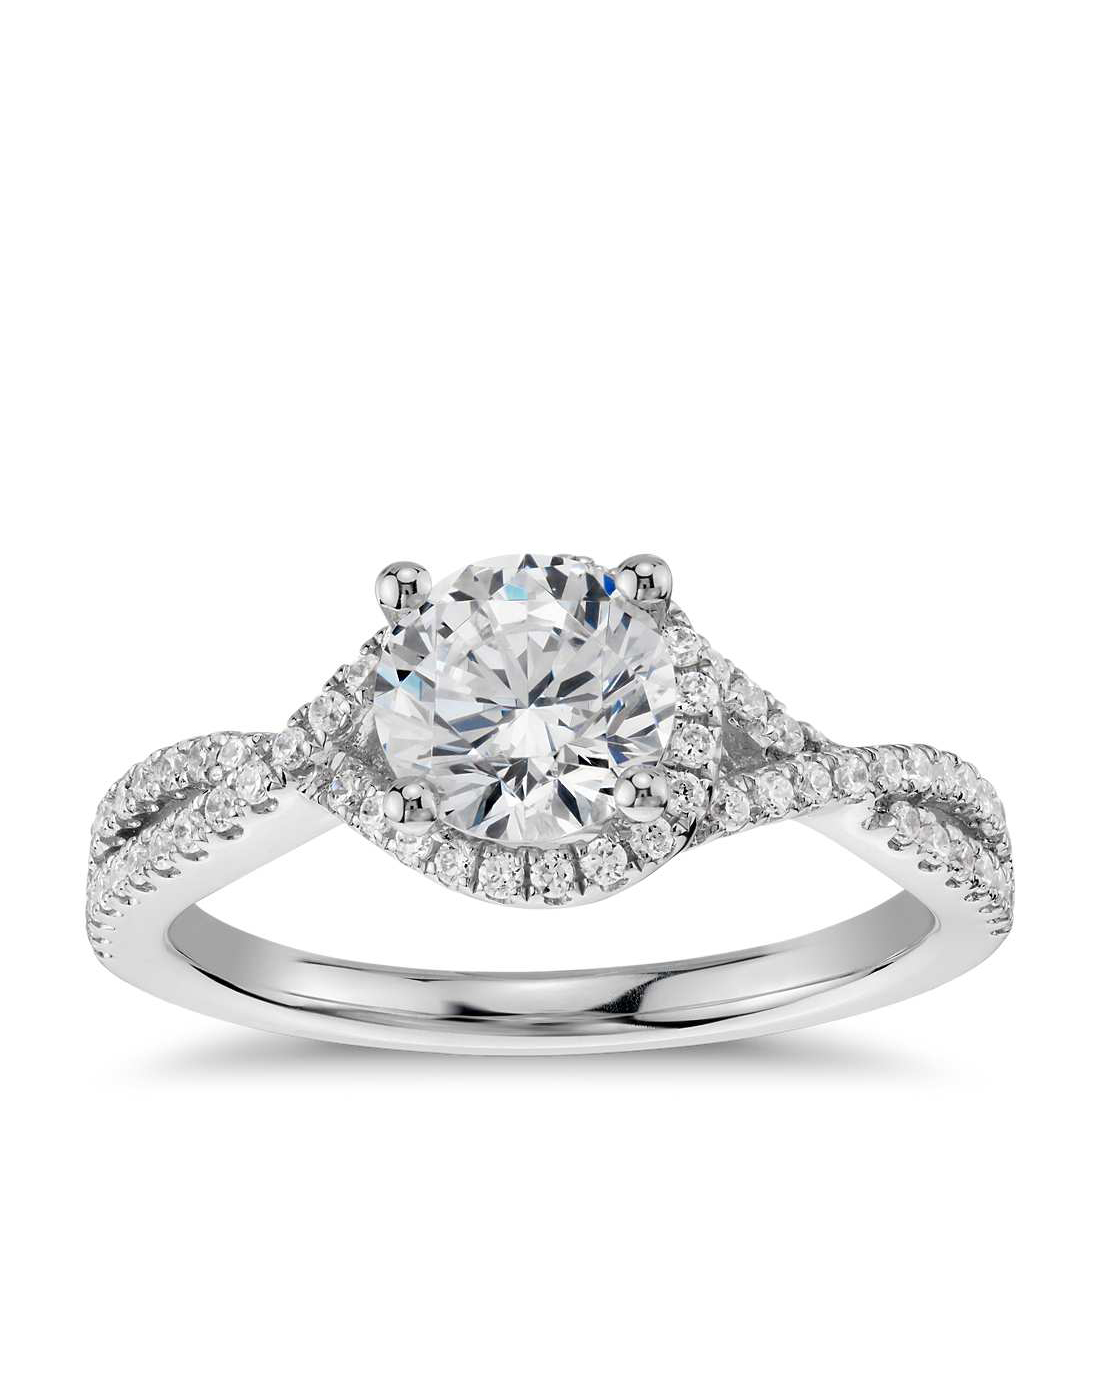 Blue Nile Twisted Halo Diamond Engagement Ring